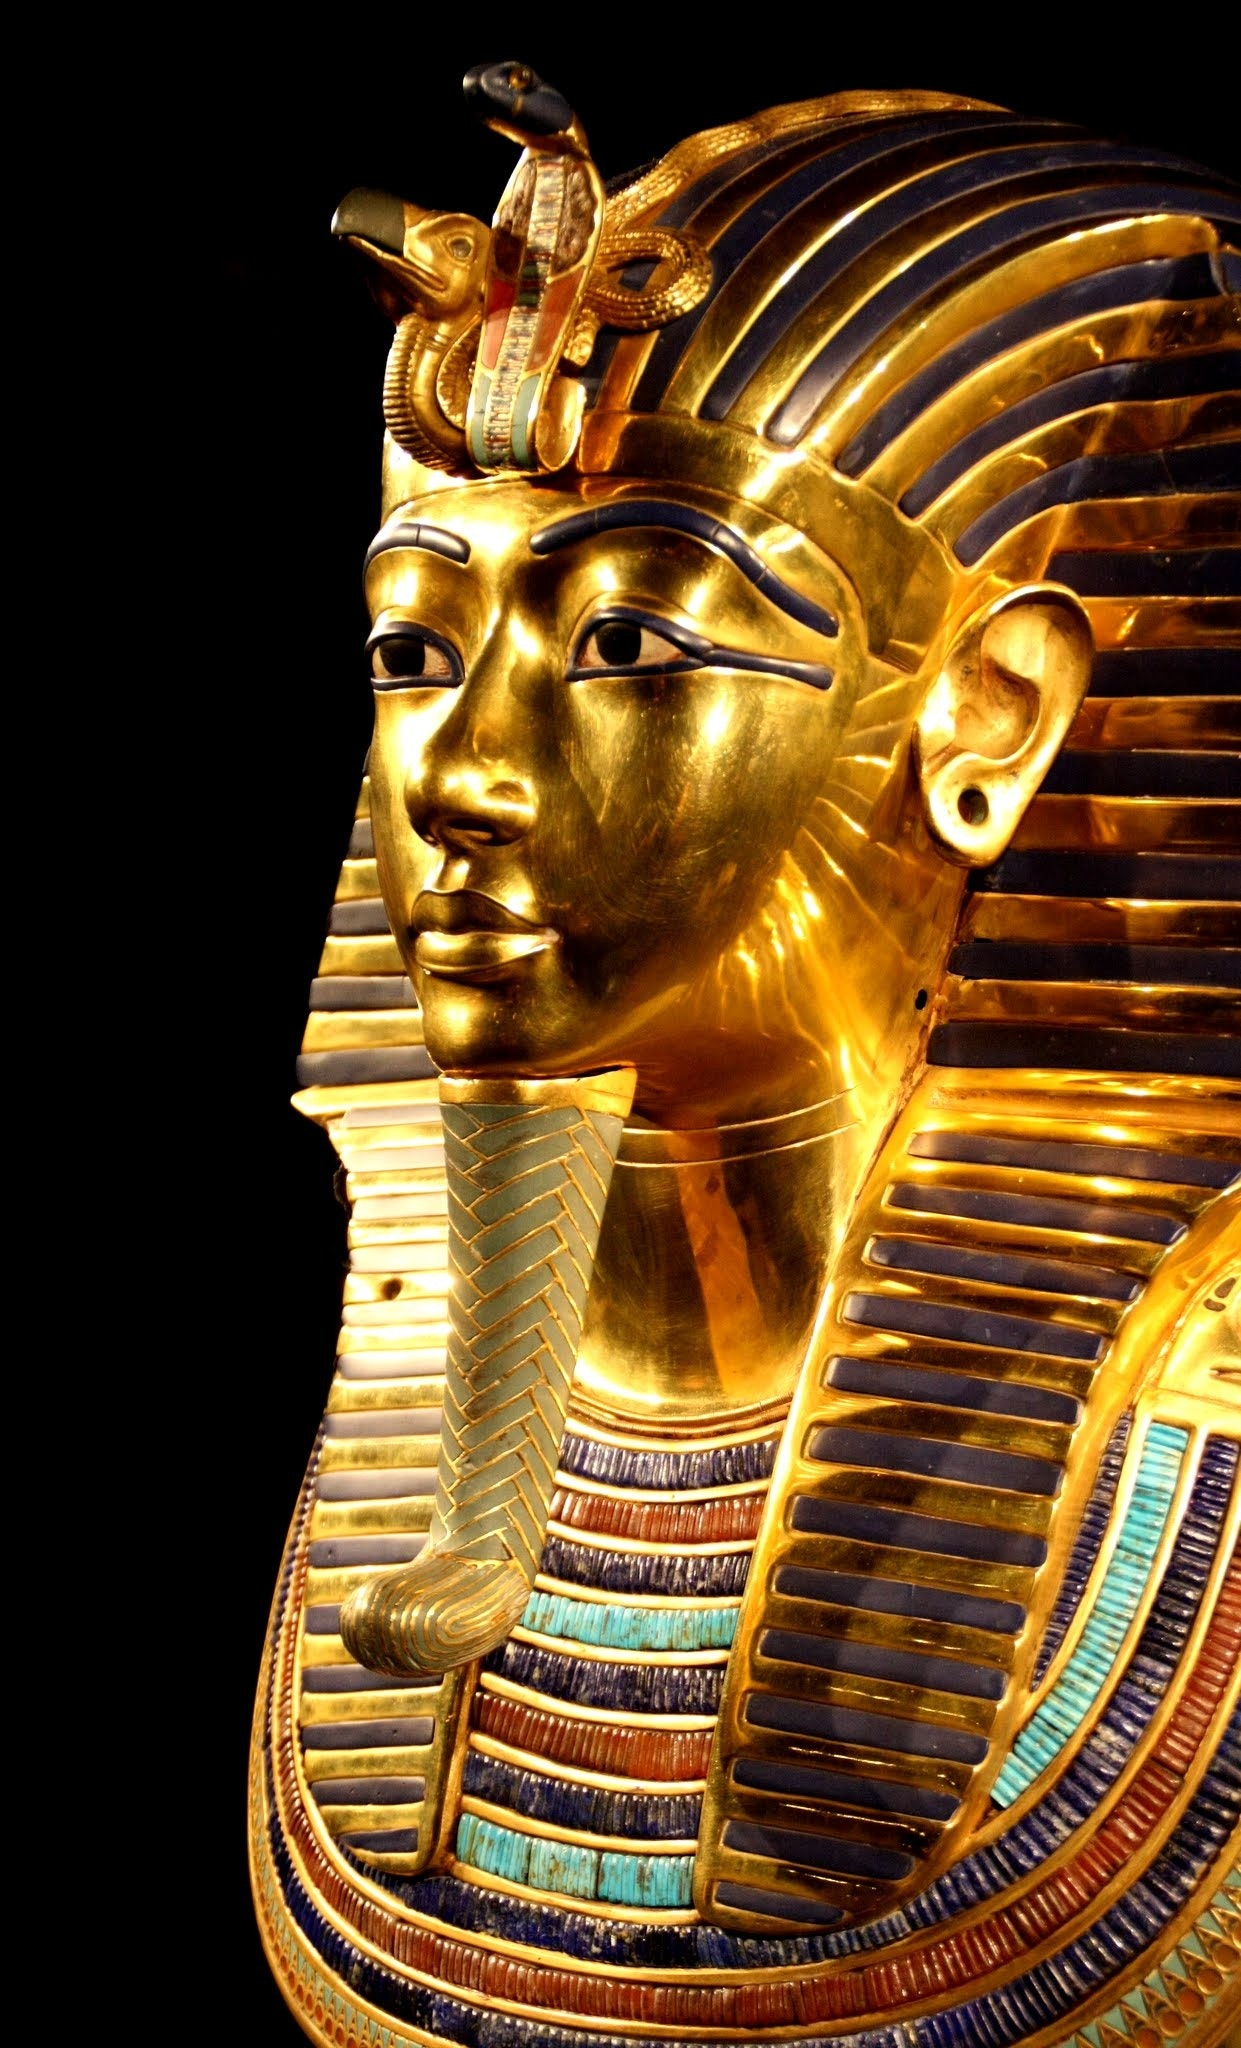 King Tut Sarcophagus Kings And Queens Wallpaper 2325550 Fanpop Source Gold Tutankhamun Statue Free Stock Photo